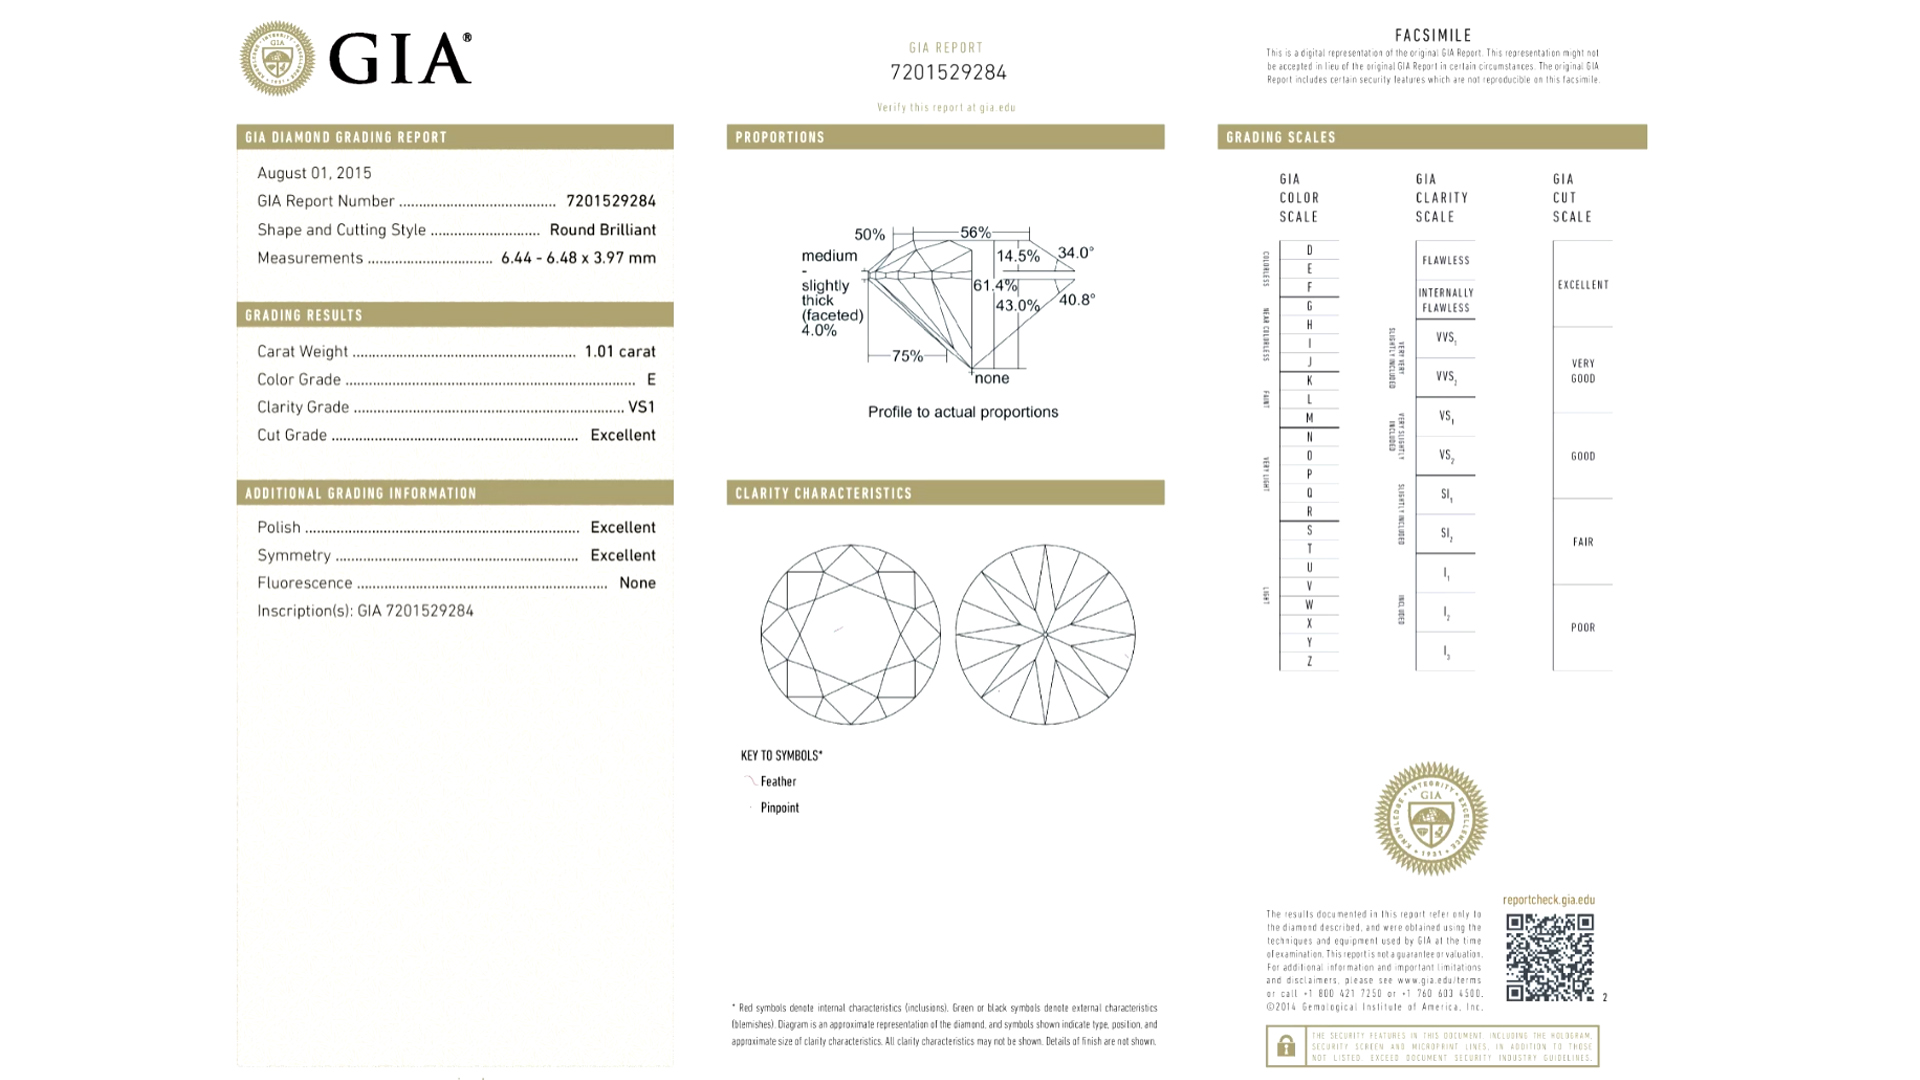 How to Read a GIA Certificate